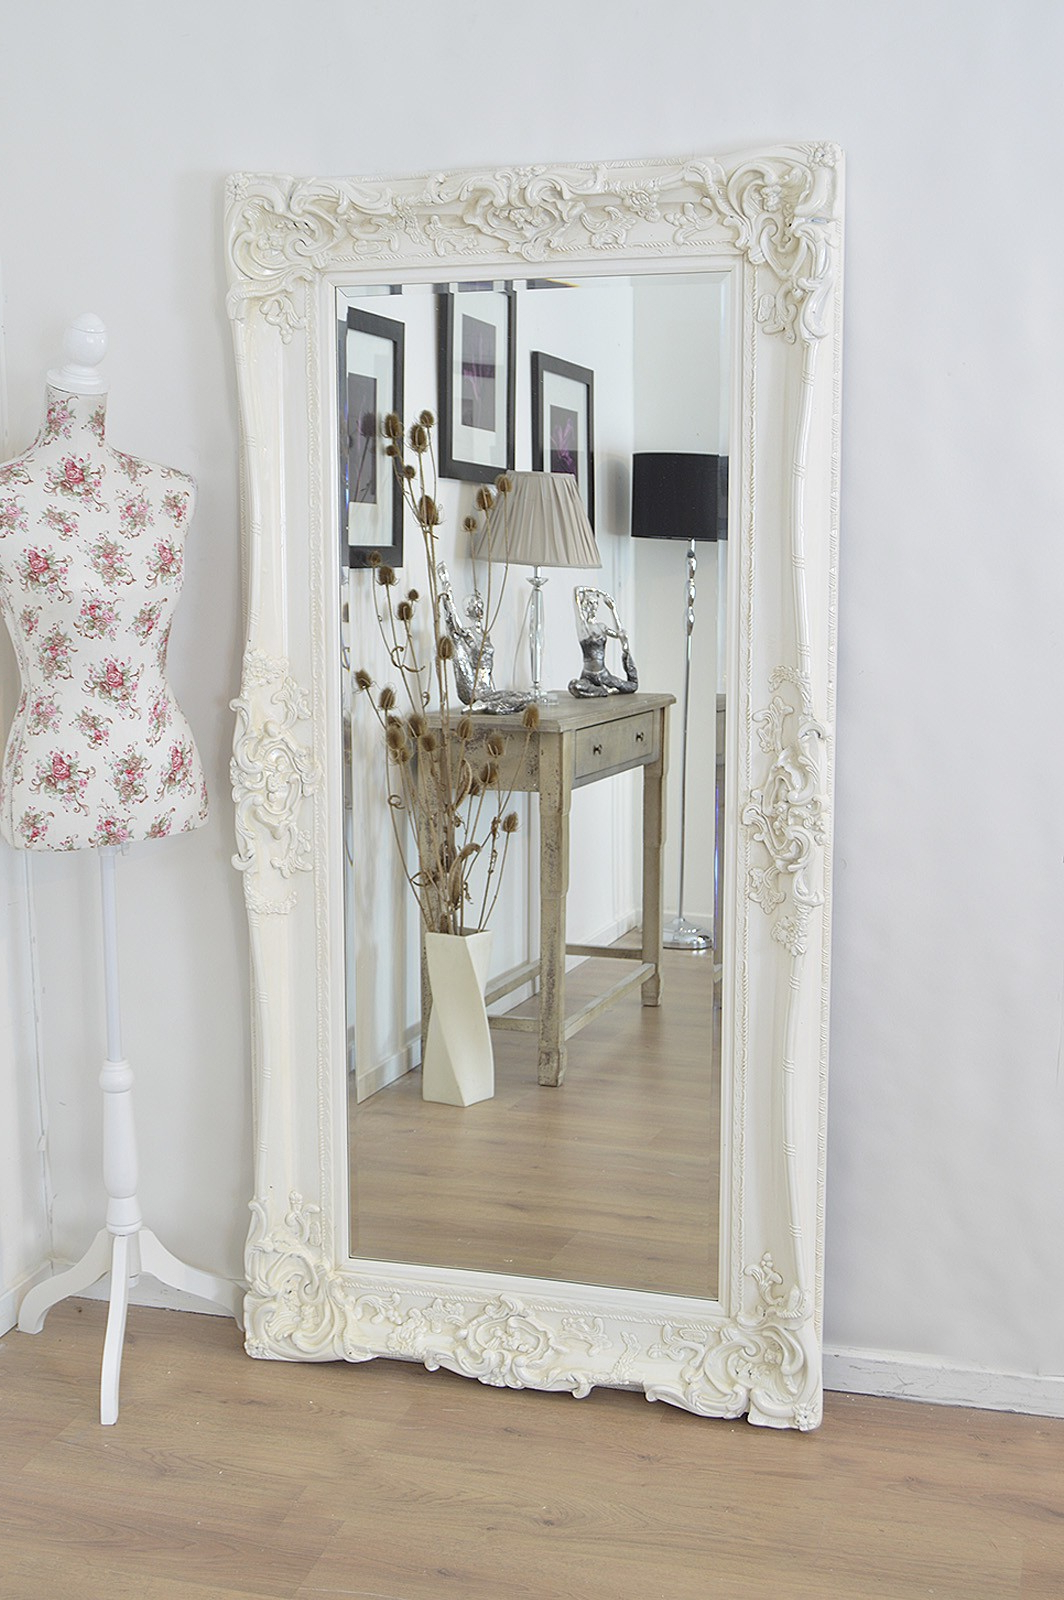 Decorating: Fashionable Shabby Chic Mirror For Home Decor Throughout Most Current Shabby Chic Wall Mirrors (View 3 of 20)